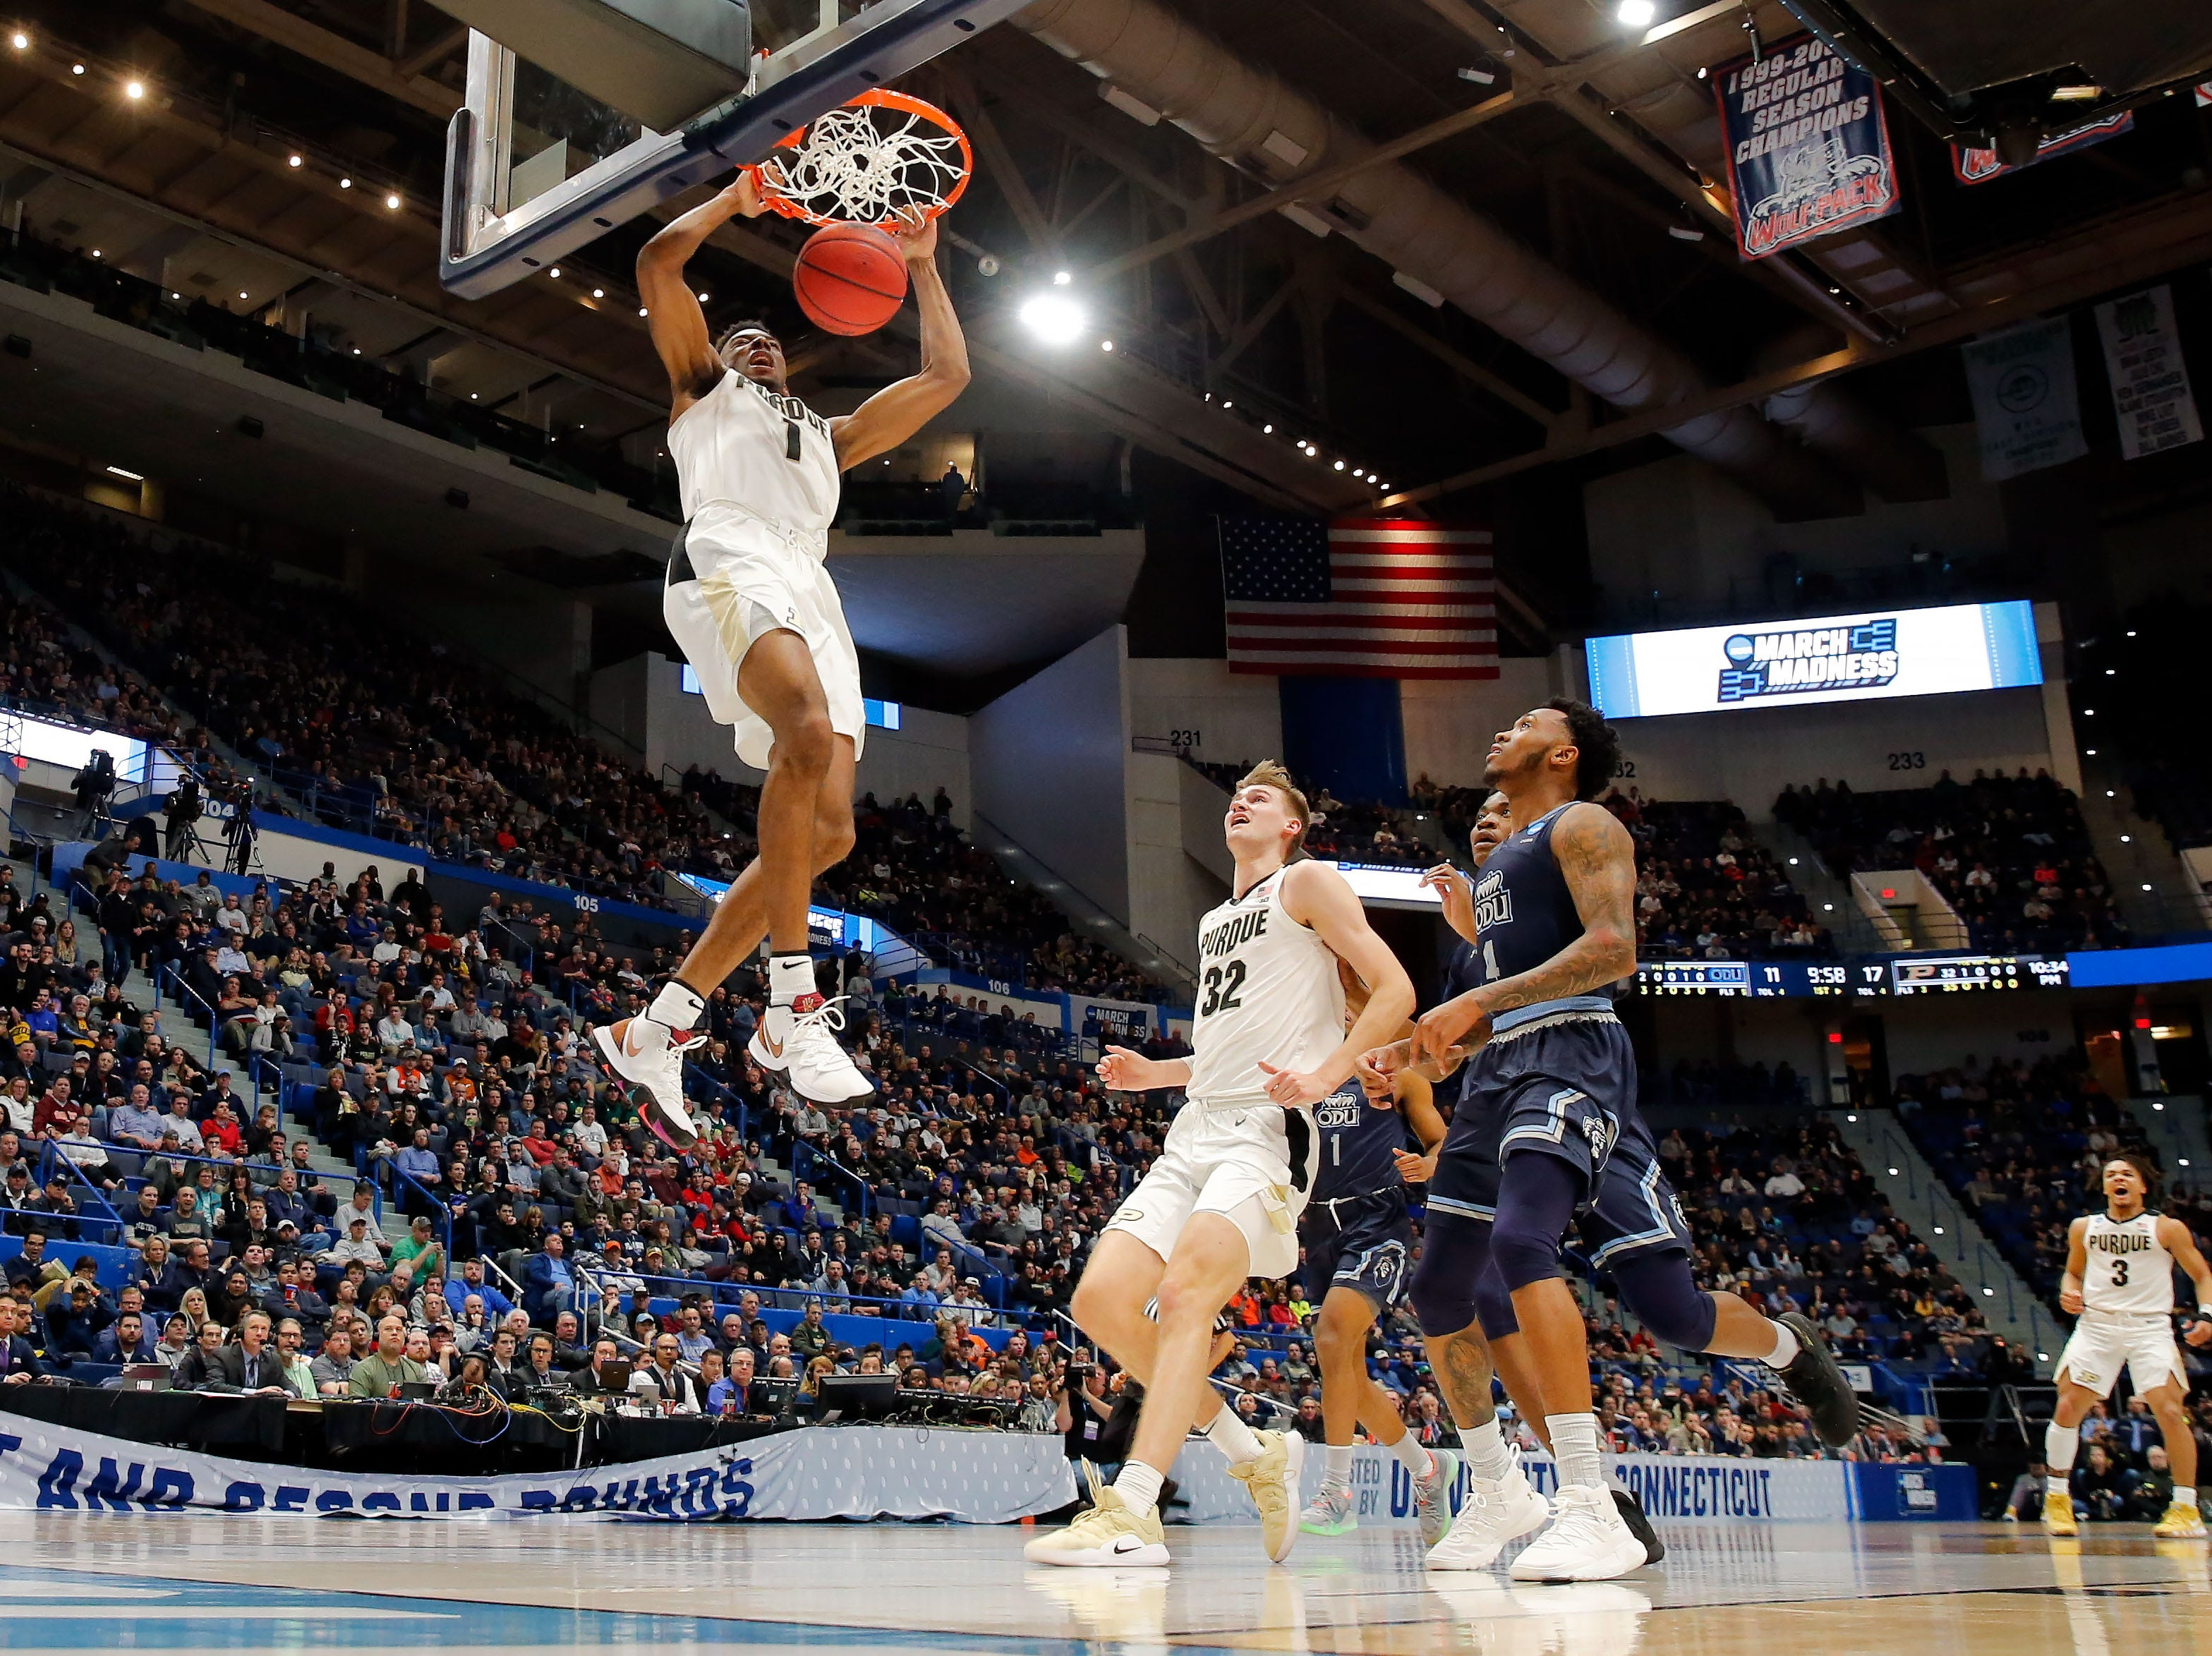 Purdue Boilermakers forward Aaron Wheeler (1) dunks and scores against the Old Dominion Monarchs during the first half of a game in the first round of the 2019 NCAA Tournament at XL Center.